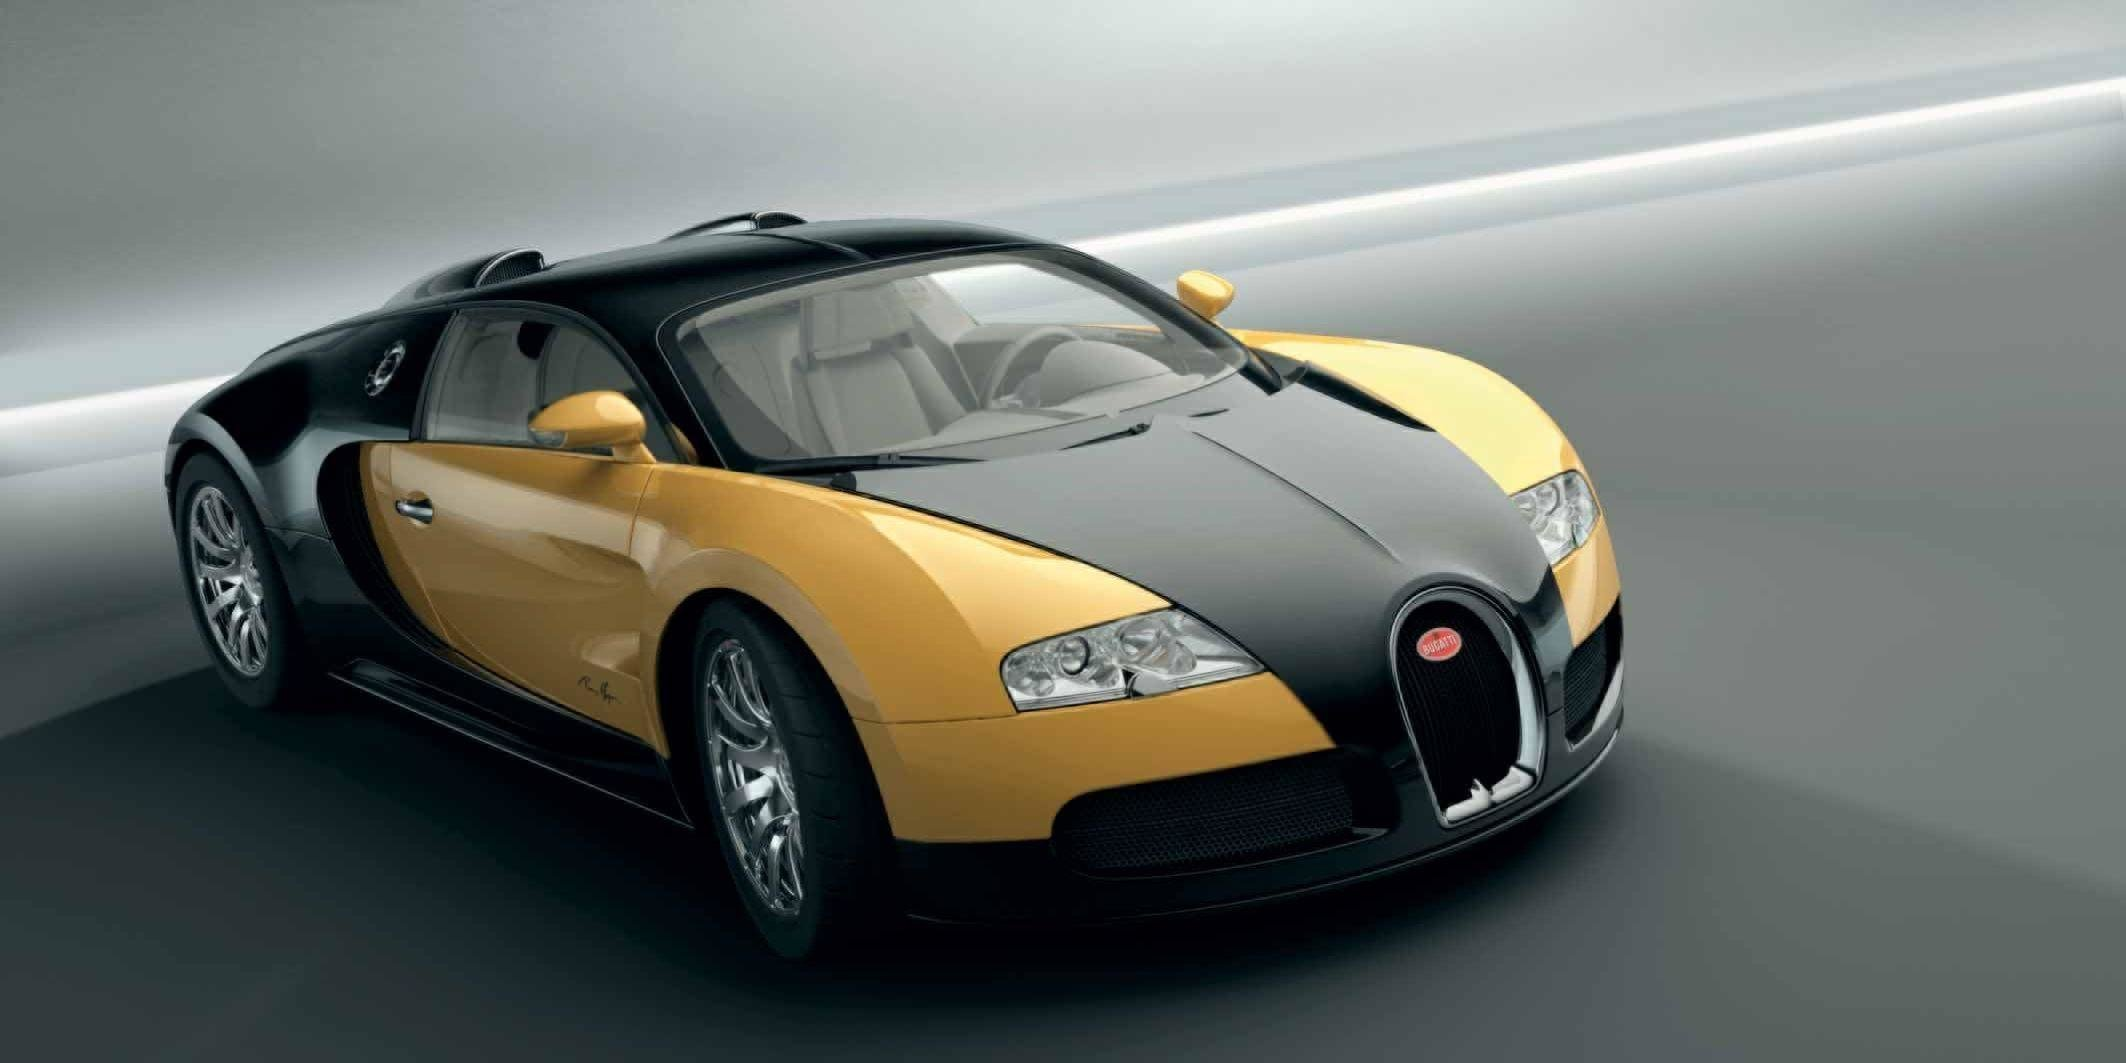 Latest Bugatti Veyron Hd Wallpapers Wallpaper Cave Free Download